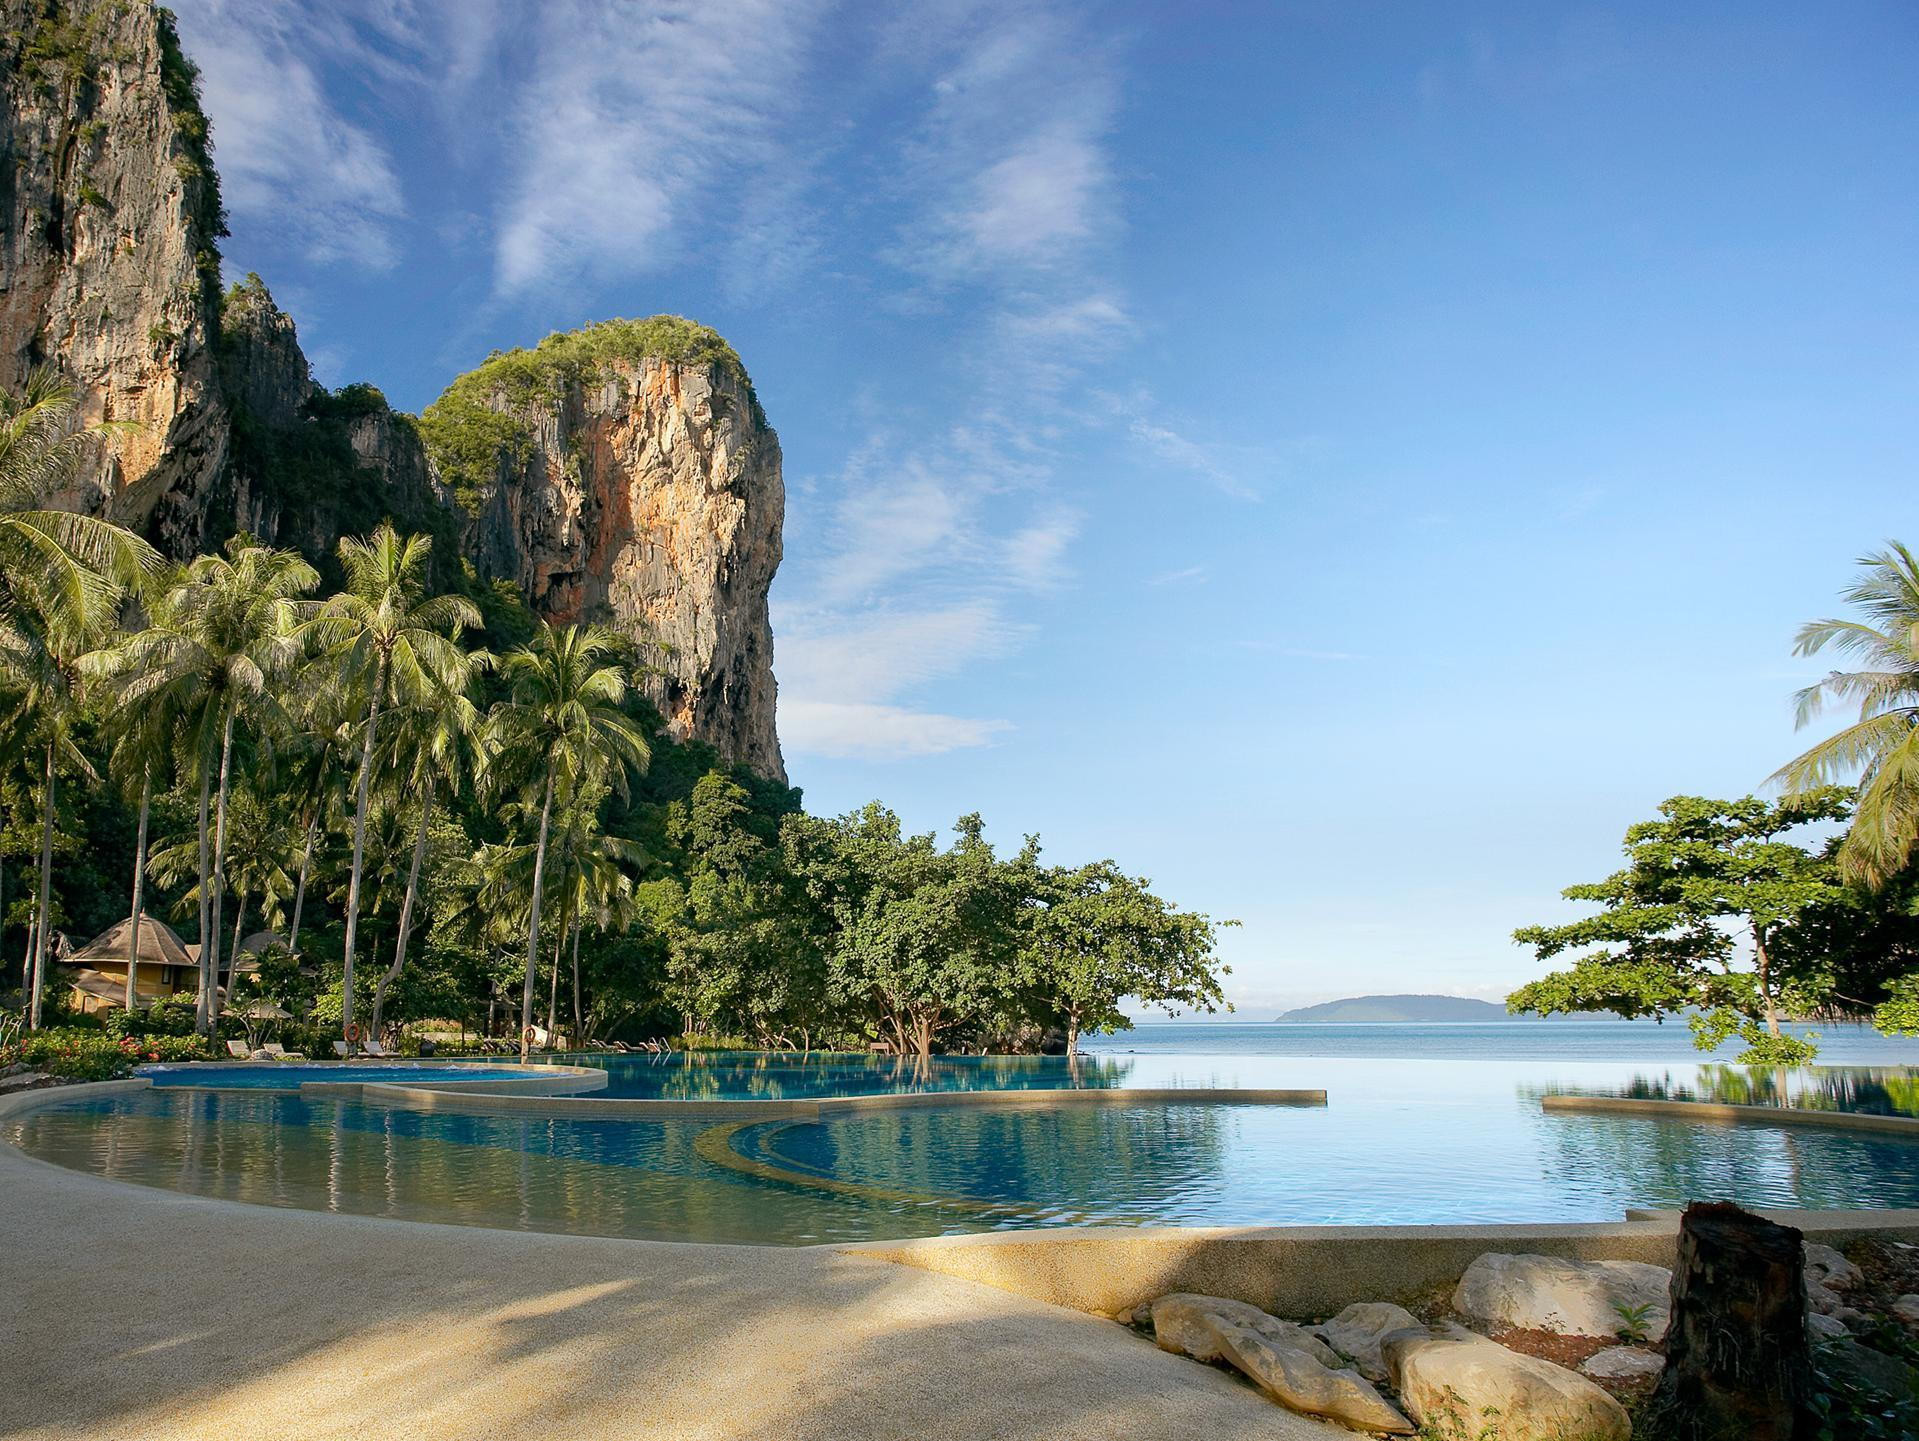 Hotel Murah di Railay Krabi - Rayavadee Hotel - Railay Beach